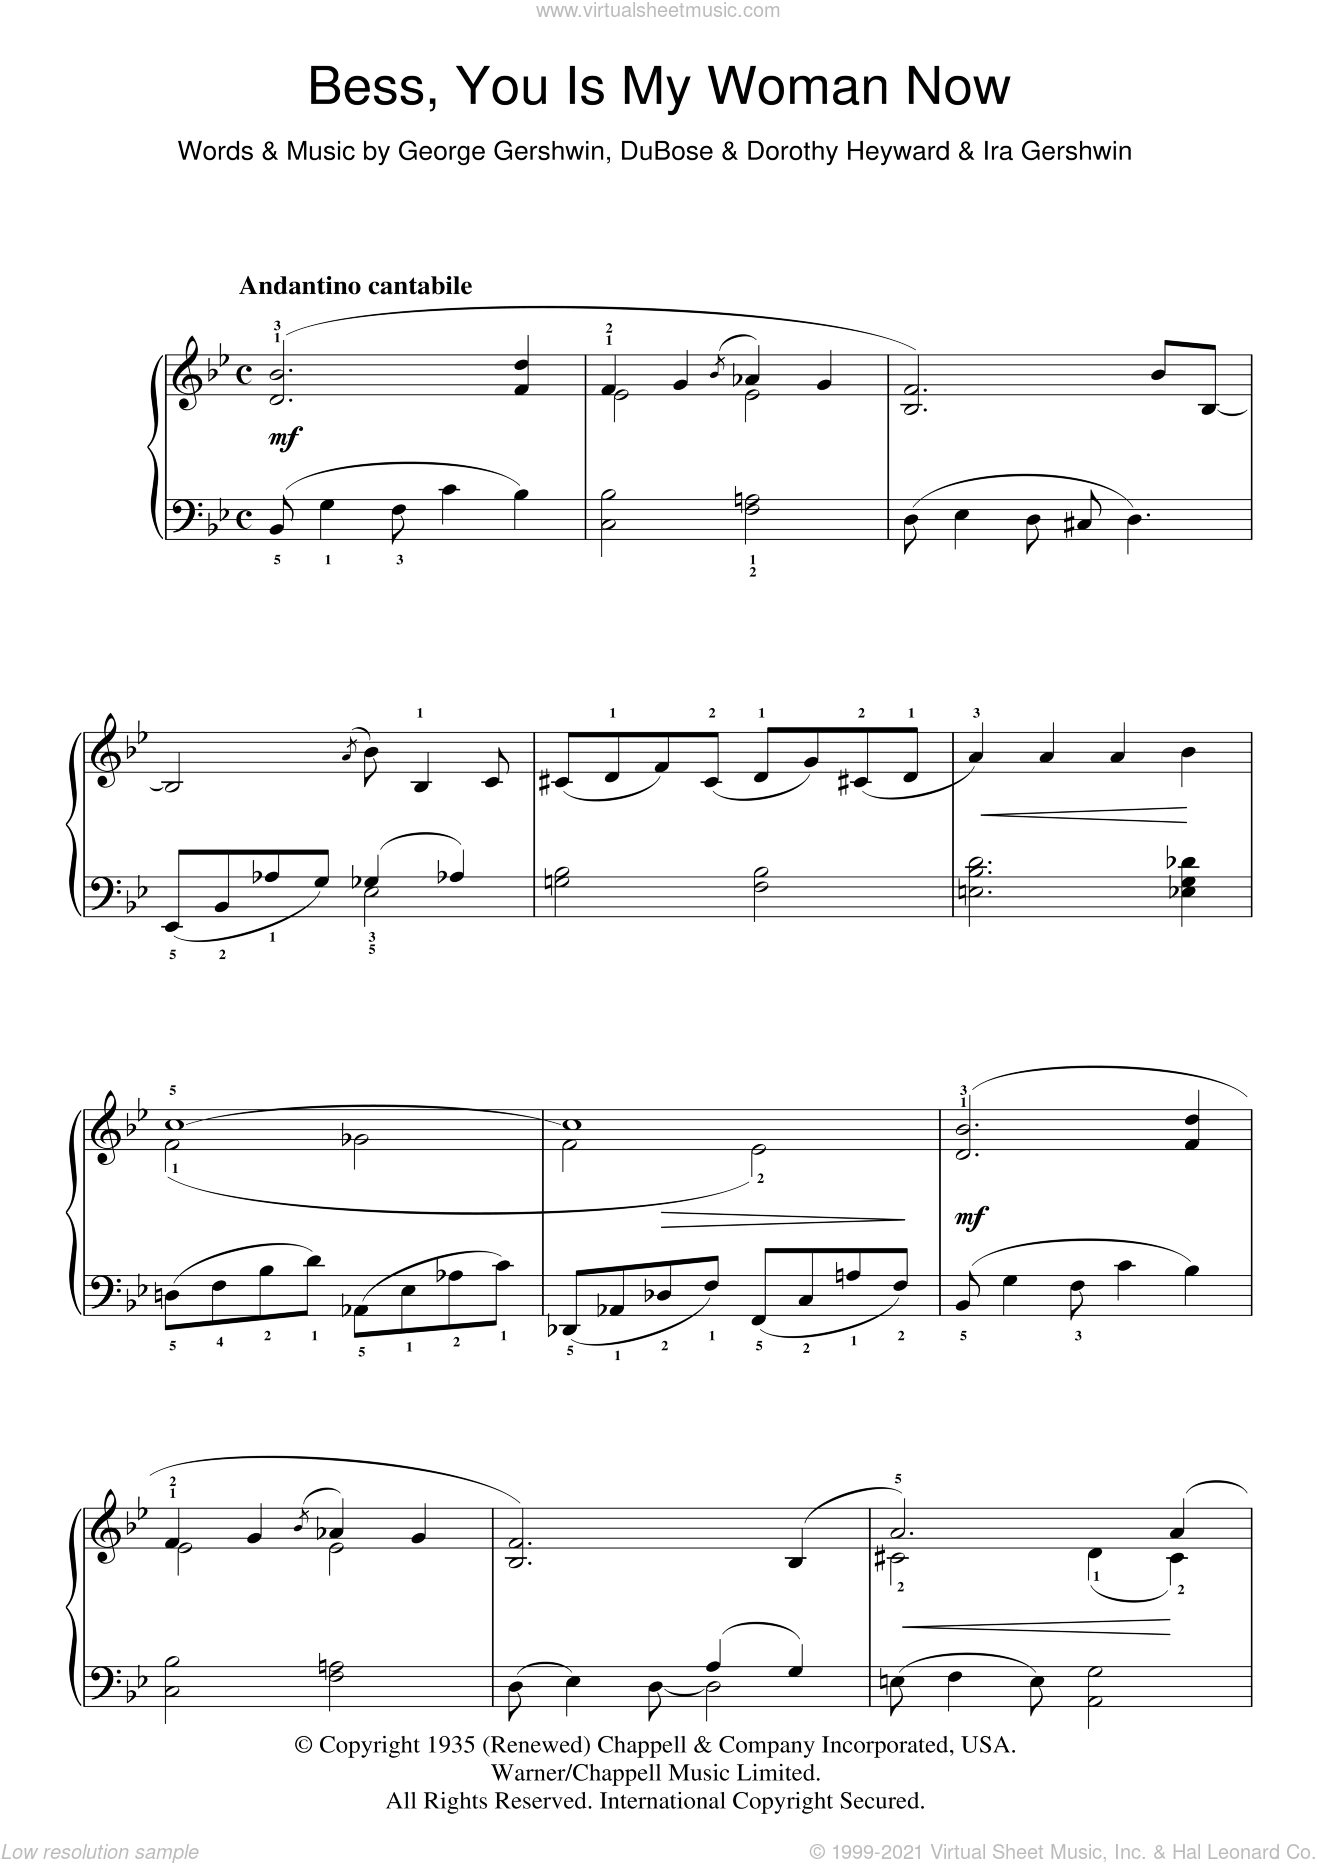 Bess, You Is My Woman Now sheet music for piano solo by Ira Gershwin, Dorothy Heyward, DuBose and George Gershwin. Score Image Preview.